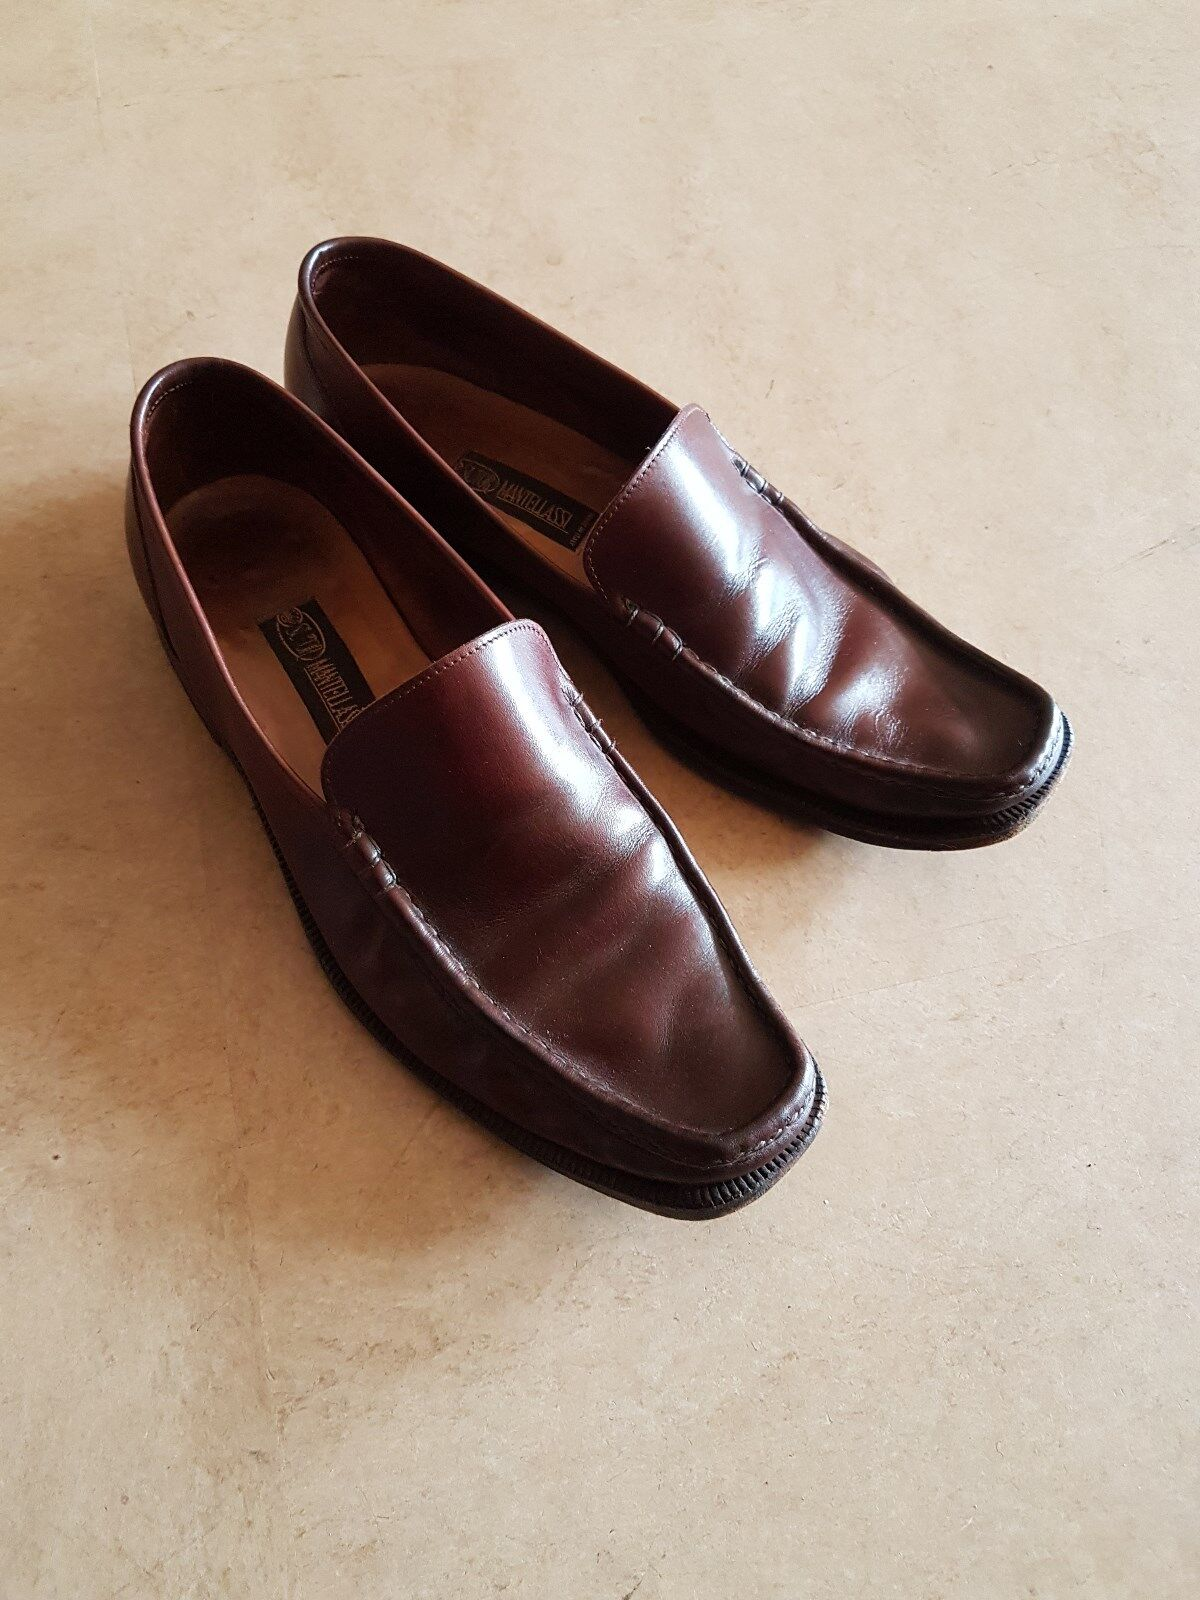 SUTOR MANTELLASSI men's dress shoes 9.5 43  loafers leather soles brown